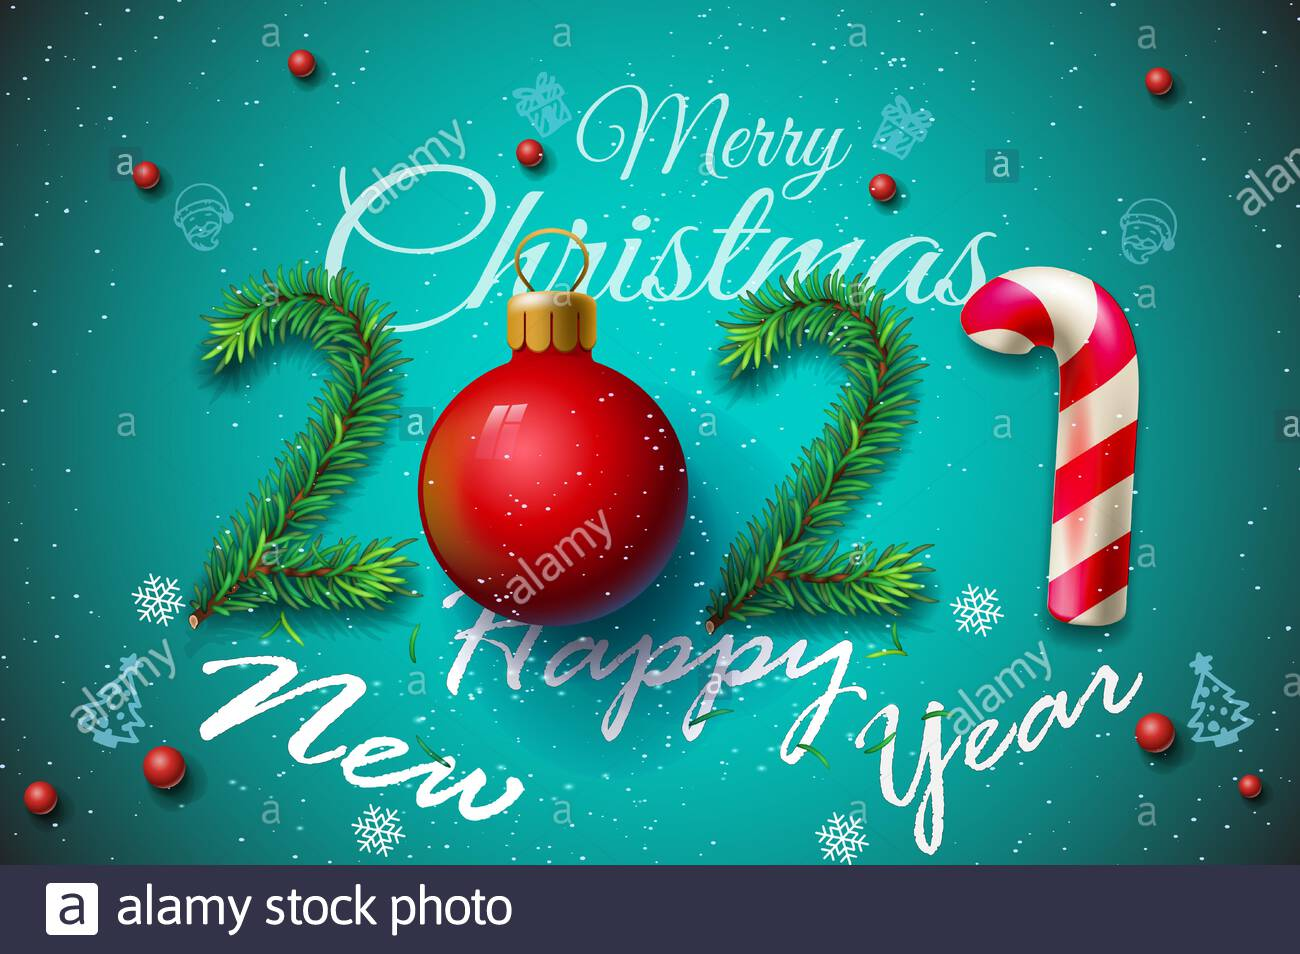 Whats New In Christmas Cards 2021 New Year 2021 And Merry Christmas Greetings Merry Christmas And Happy New Year 2021 Greeting Card Vector Illustration New Year 2021 Greeting Card Stock Vector Image Art Alamy